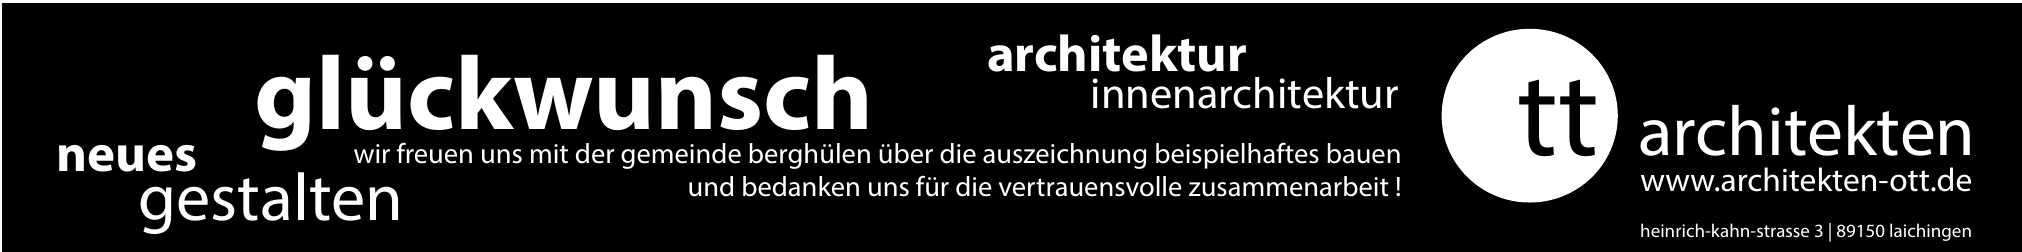 ott_architekten